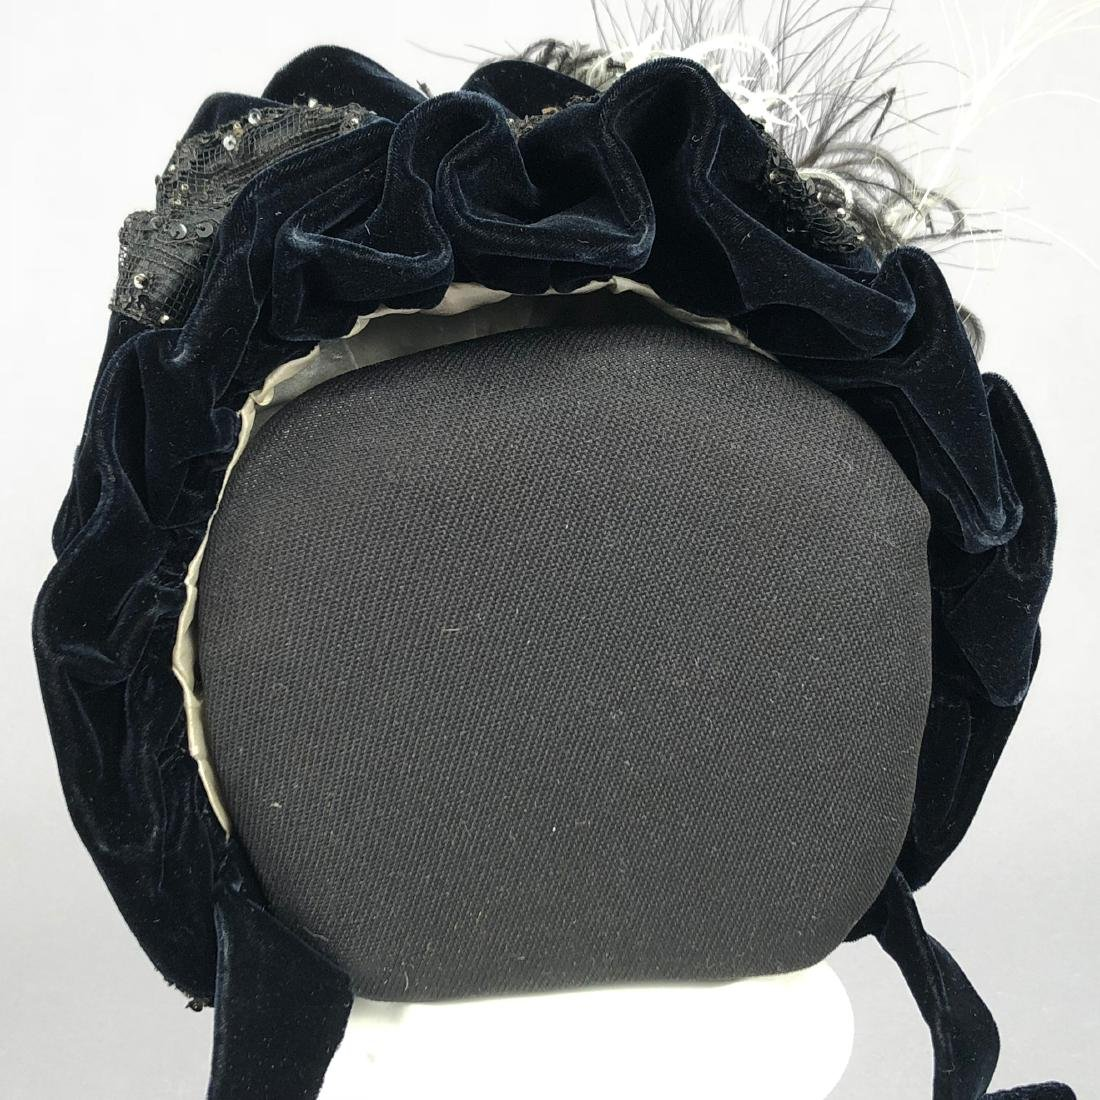 VELVET HAT, PRINCESS LOUISE of PRUSSIA, 1890s - 4